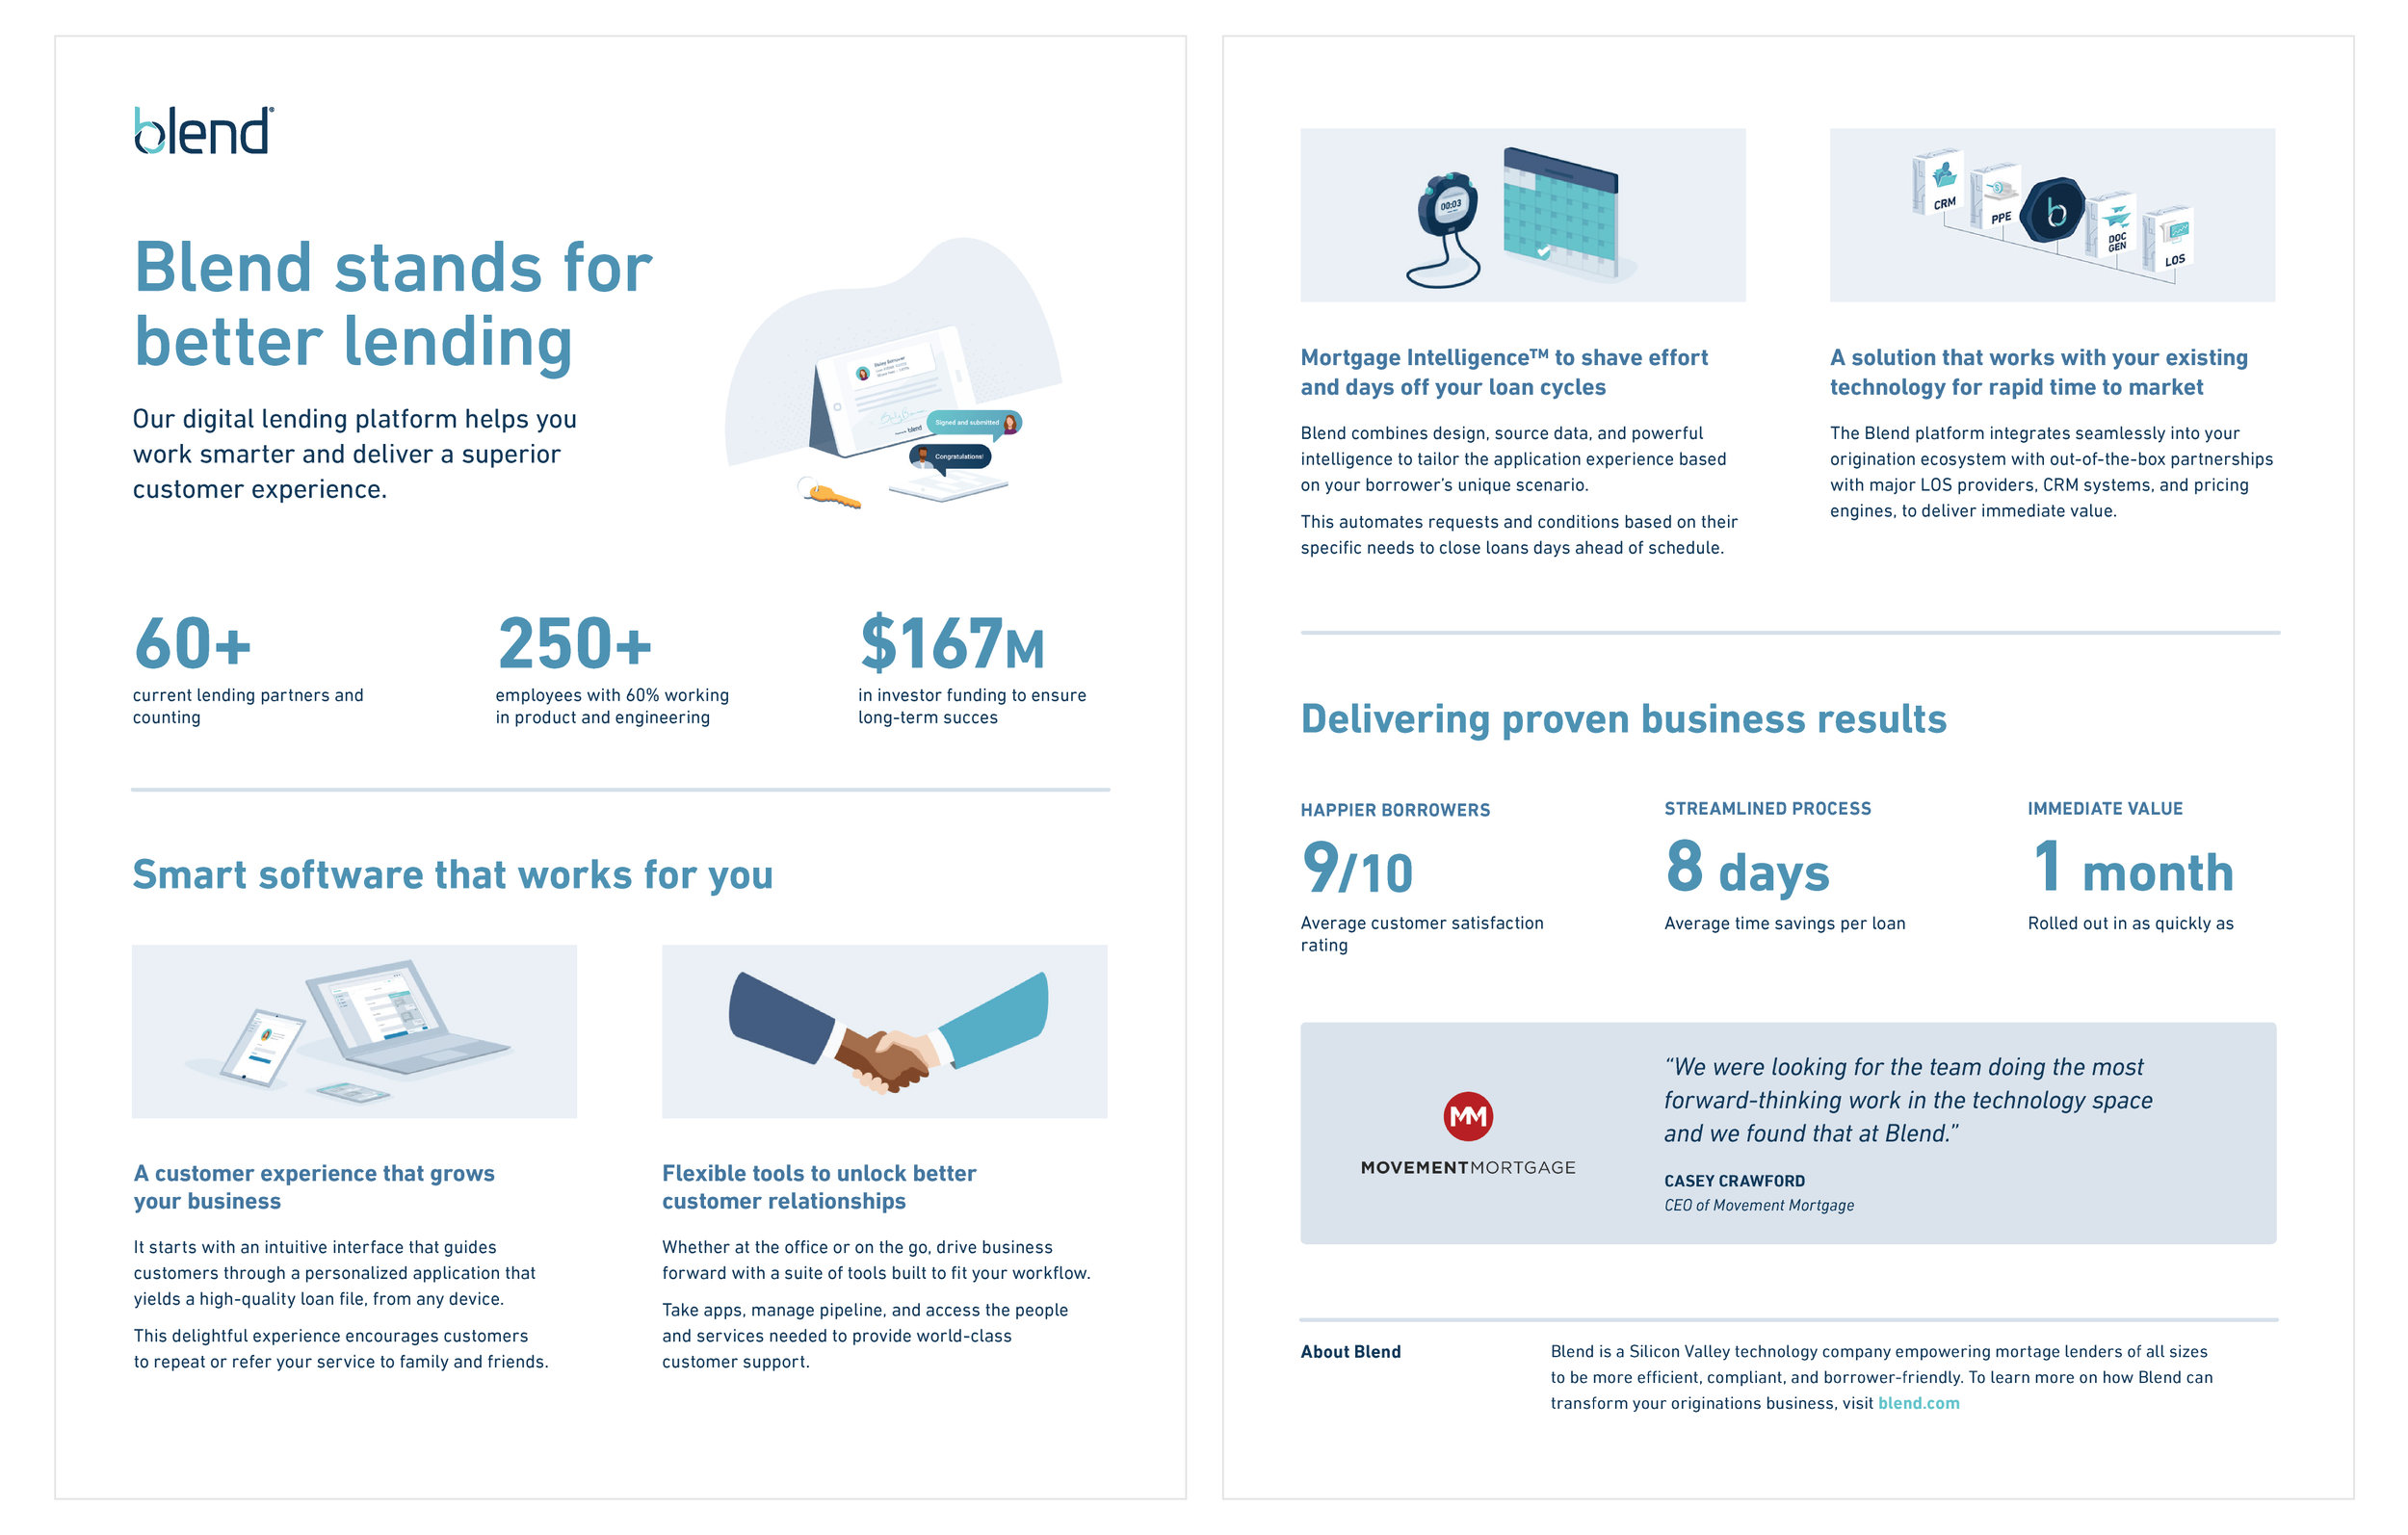 Marketing product info one-pager - 2018